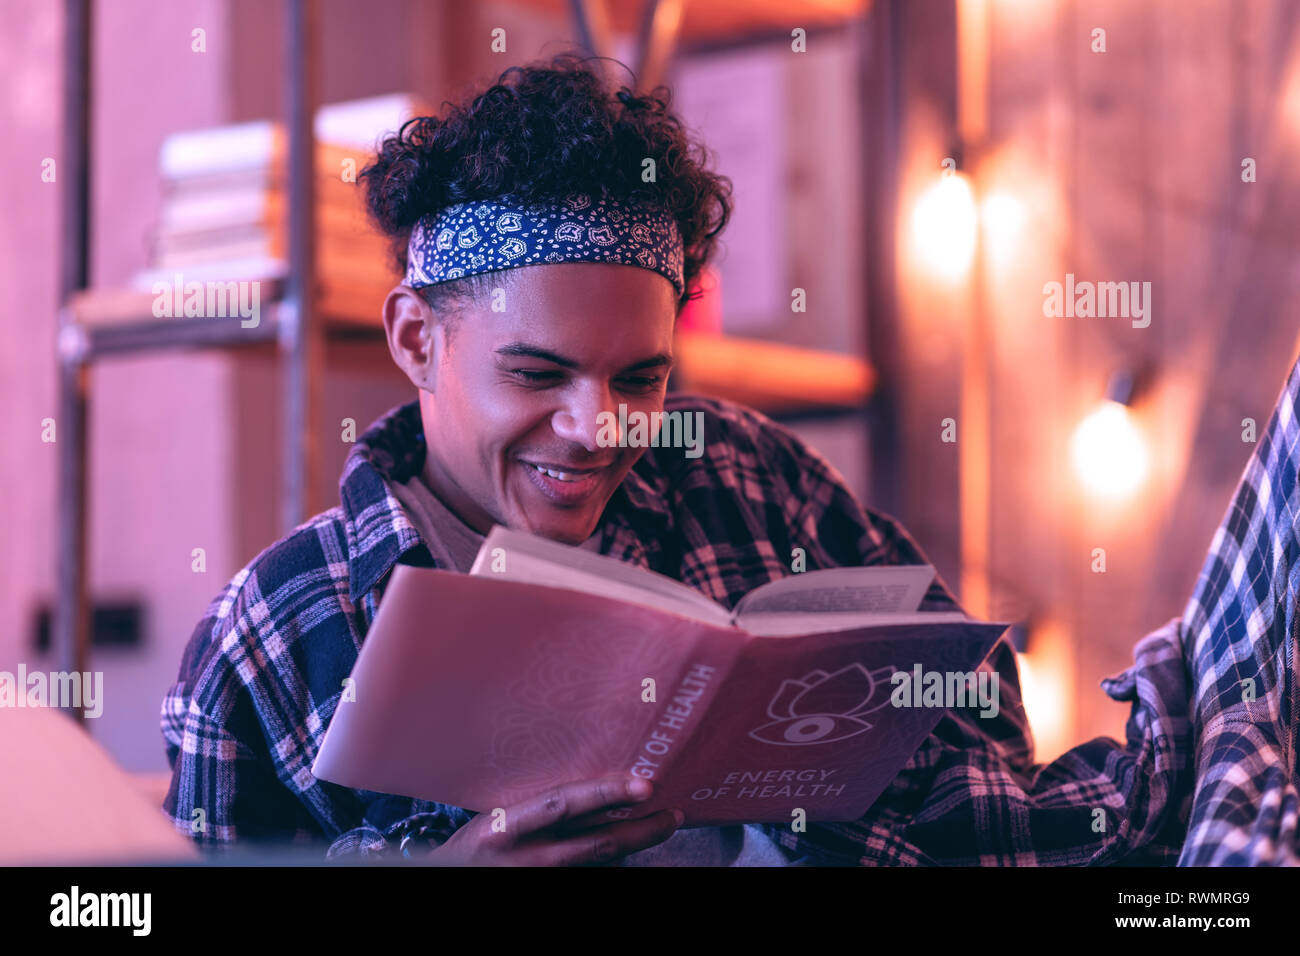 Boy surprisingly candidly smiling to romantic story he reading in his book. - Stock Image